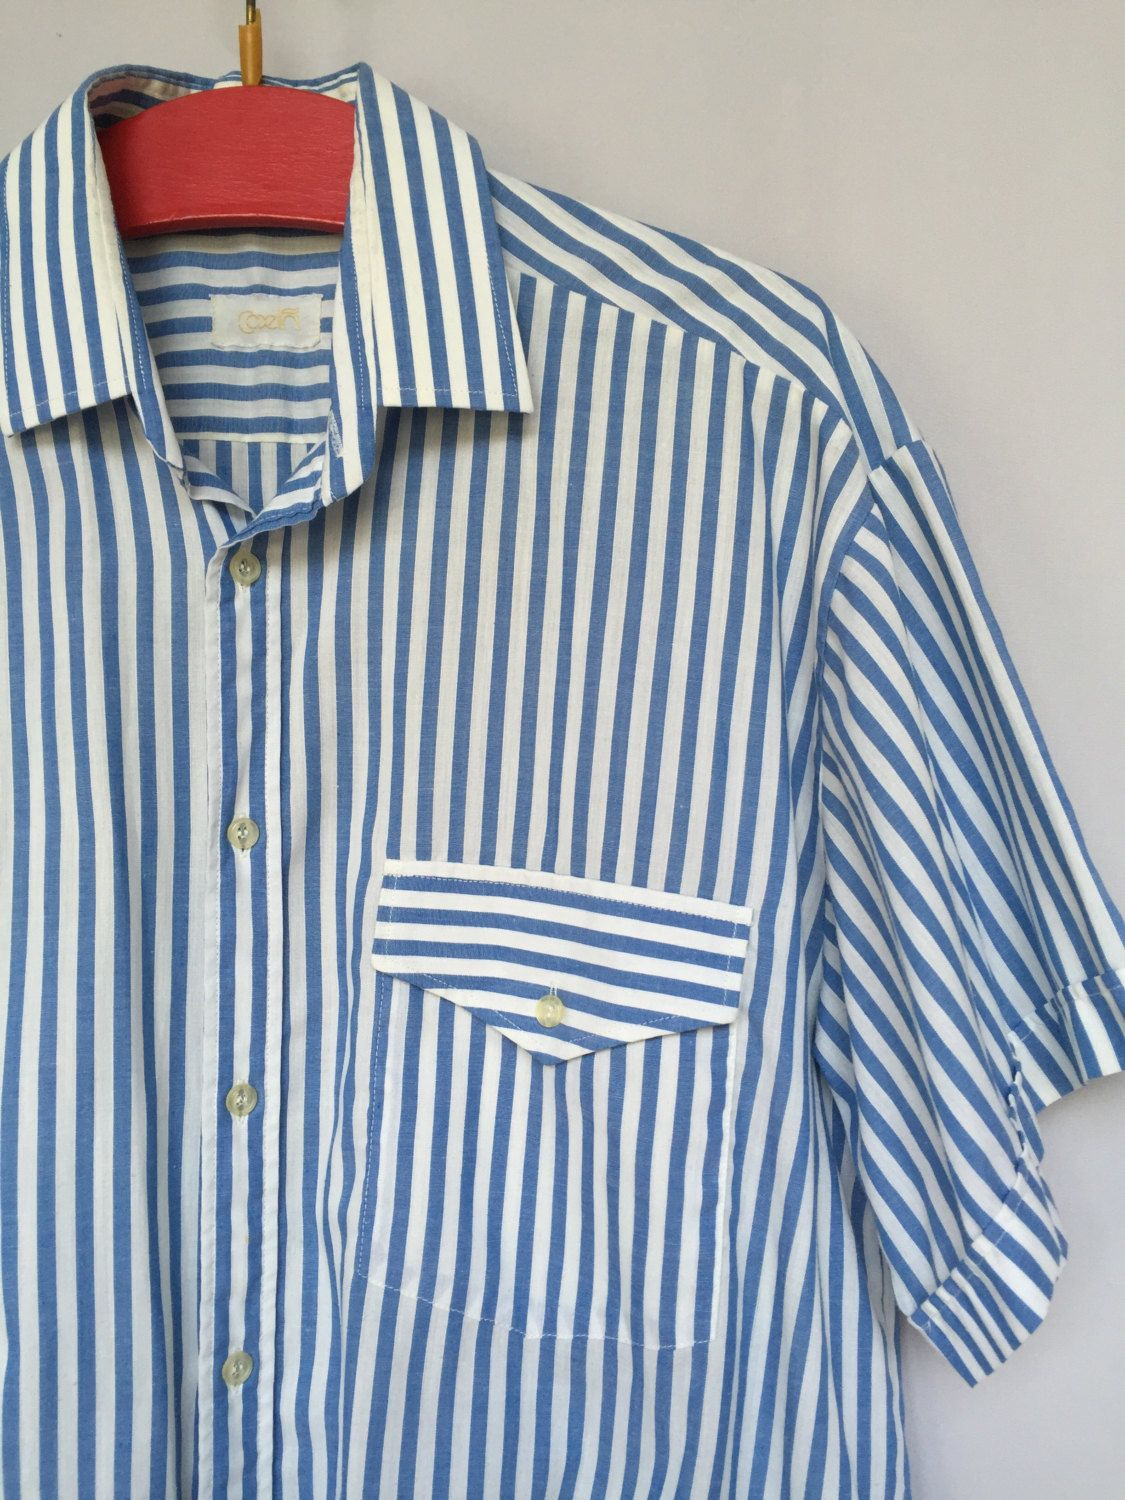 953a3bc25d11 80 s blue stripe navy man shirt nautical light summer shirt oxford shirt 41  (eu) M by RosaBoutiqueStudio on Etsy